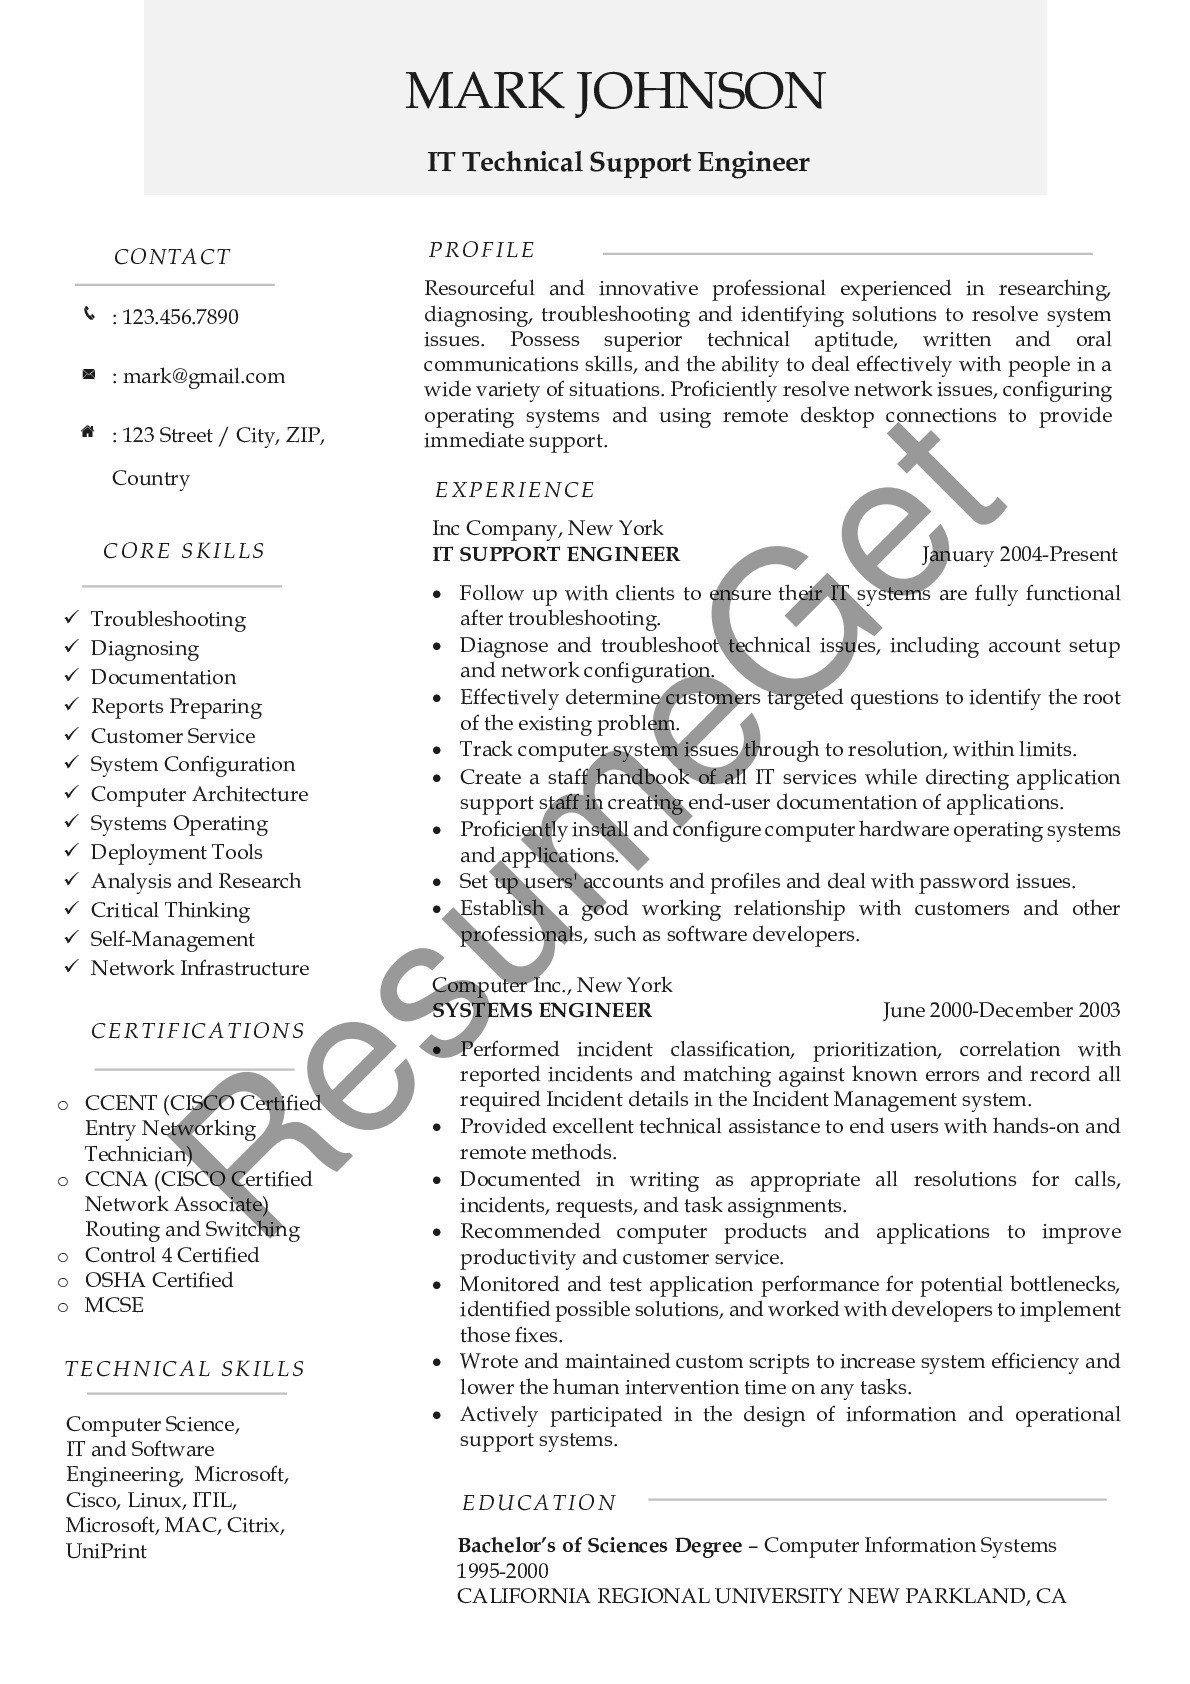 Resume for IT Technical Support Engineer